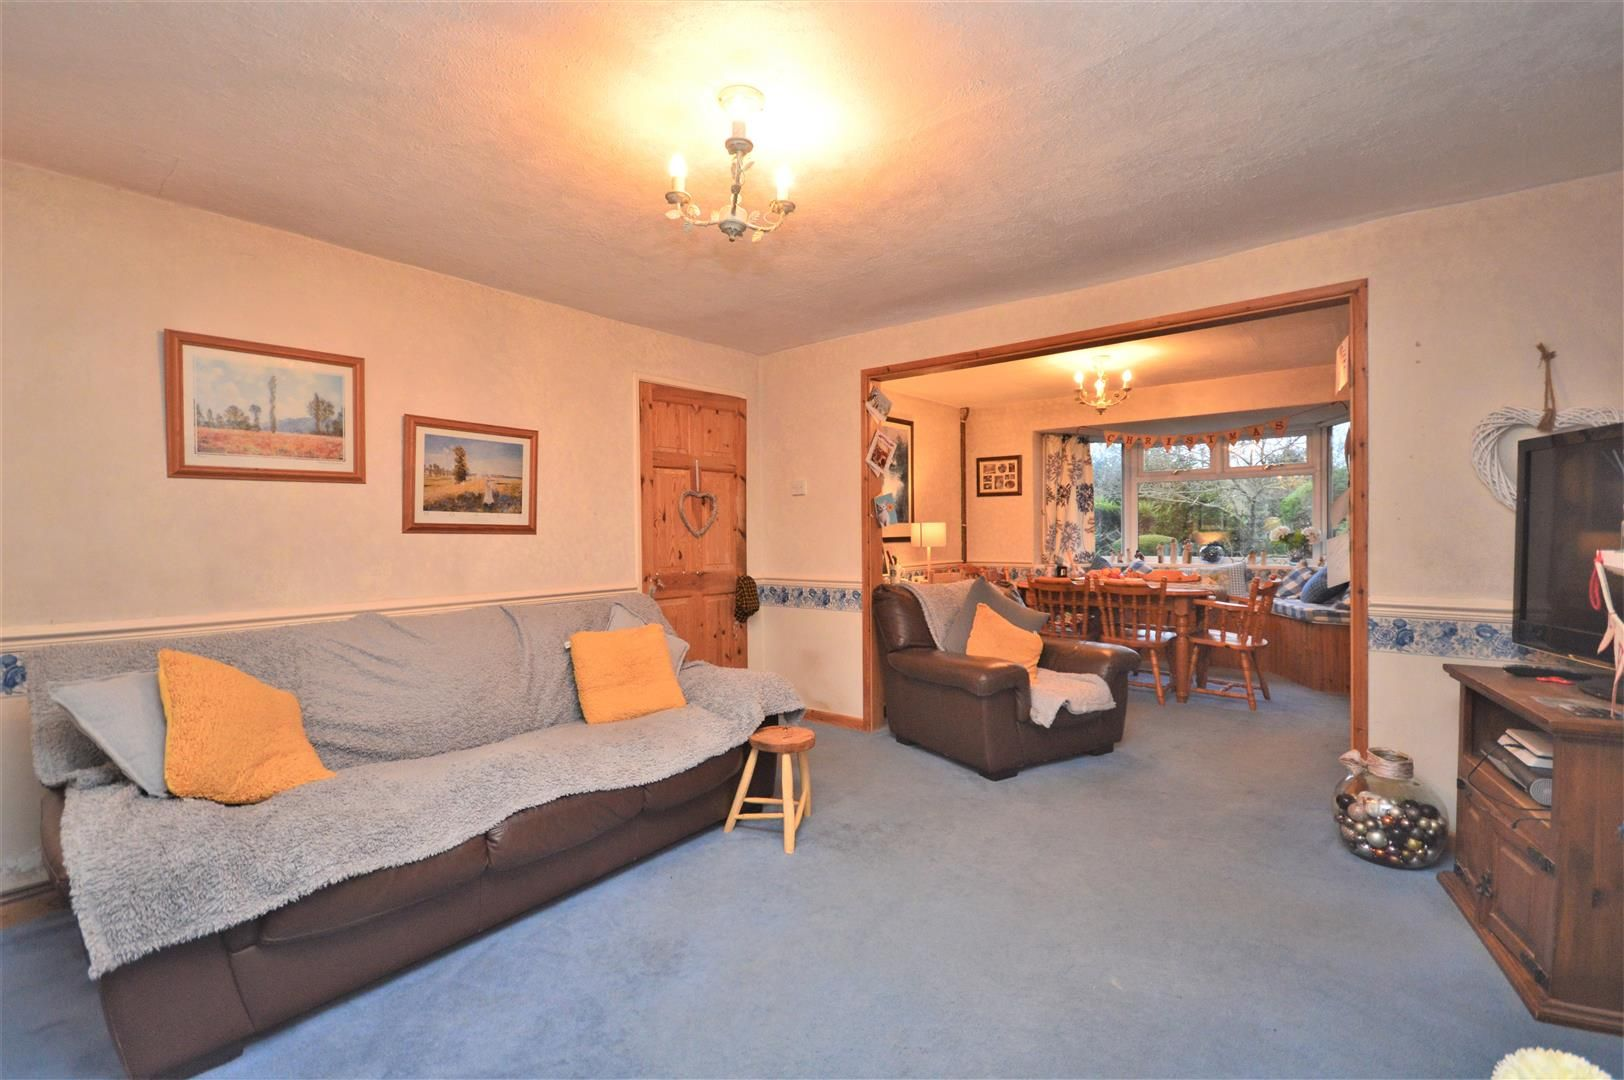 3 bed semi-detached for sale in Much Birch 2